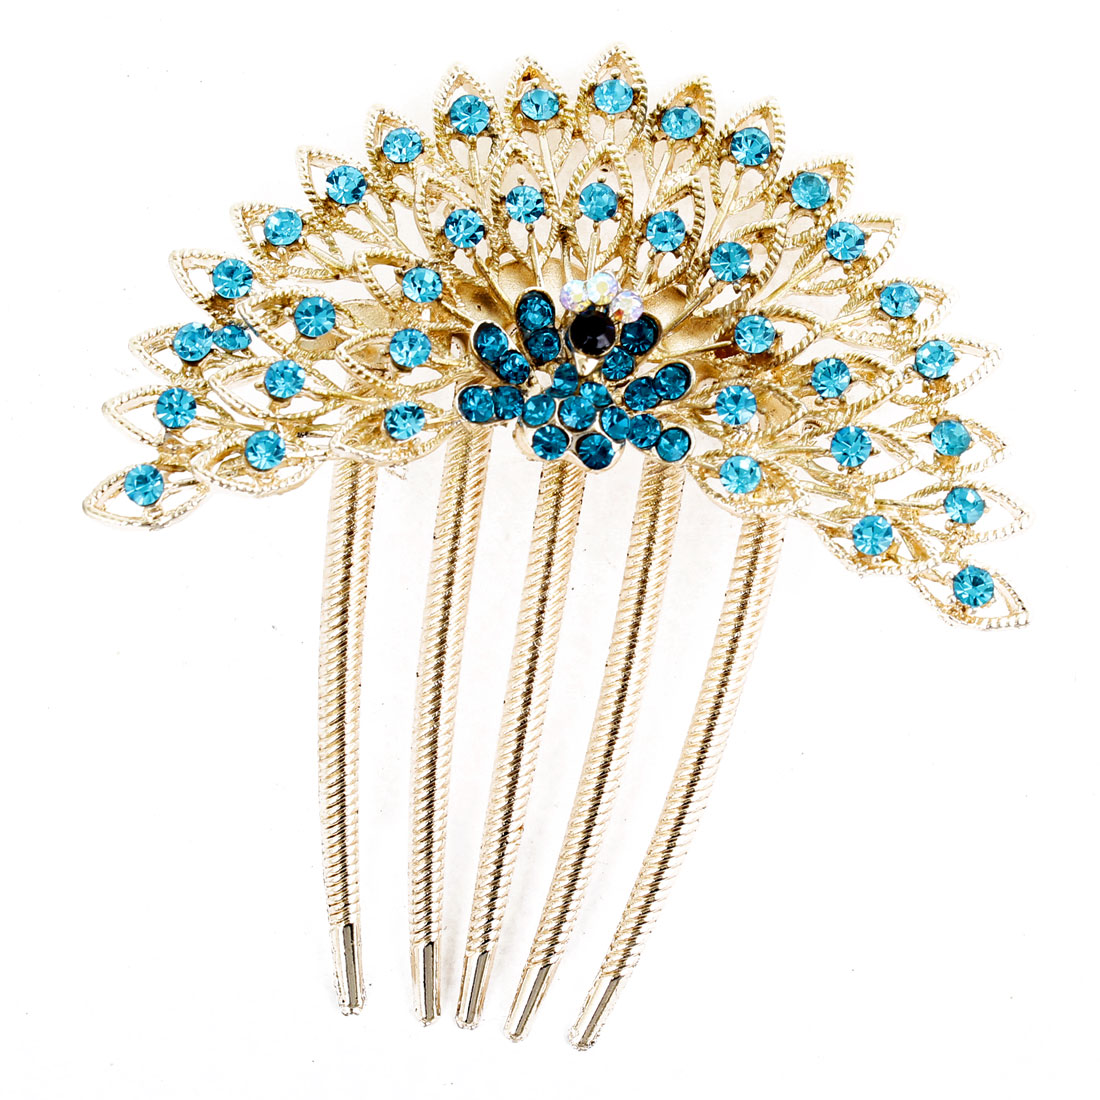 Blue Bling Bling Faux Rhinestones Inlaid Peacock Hair Comb Clip Claw Gold Tone